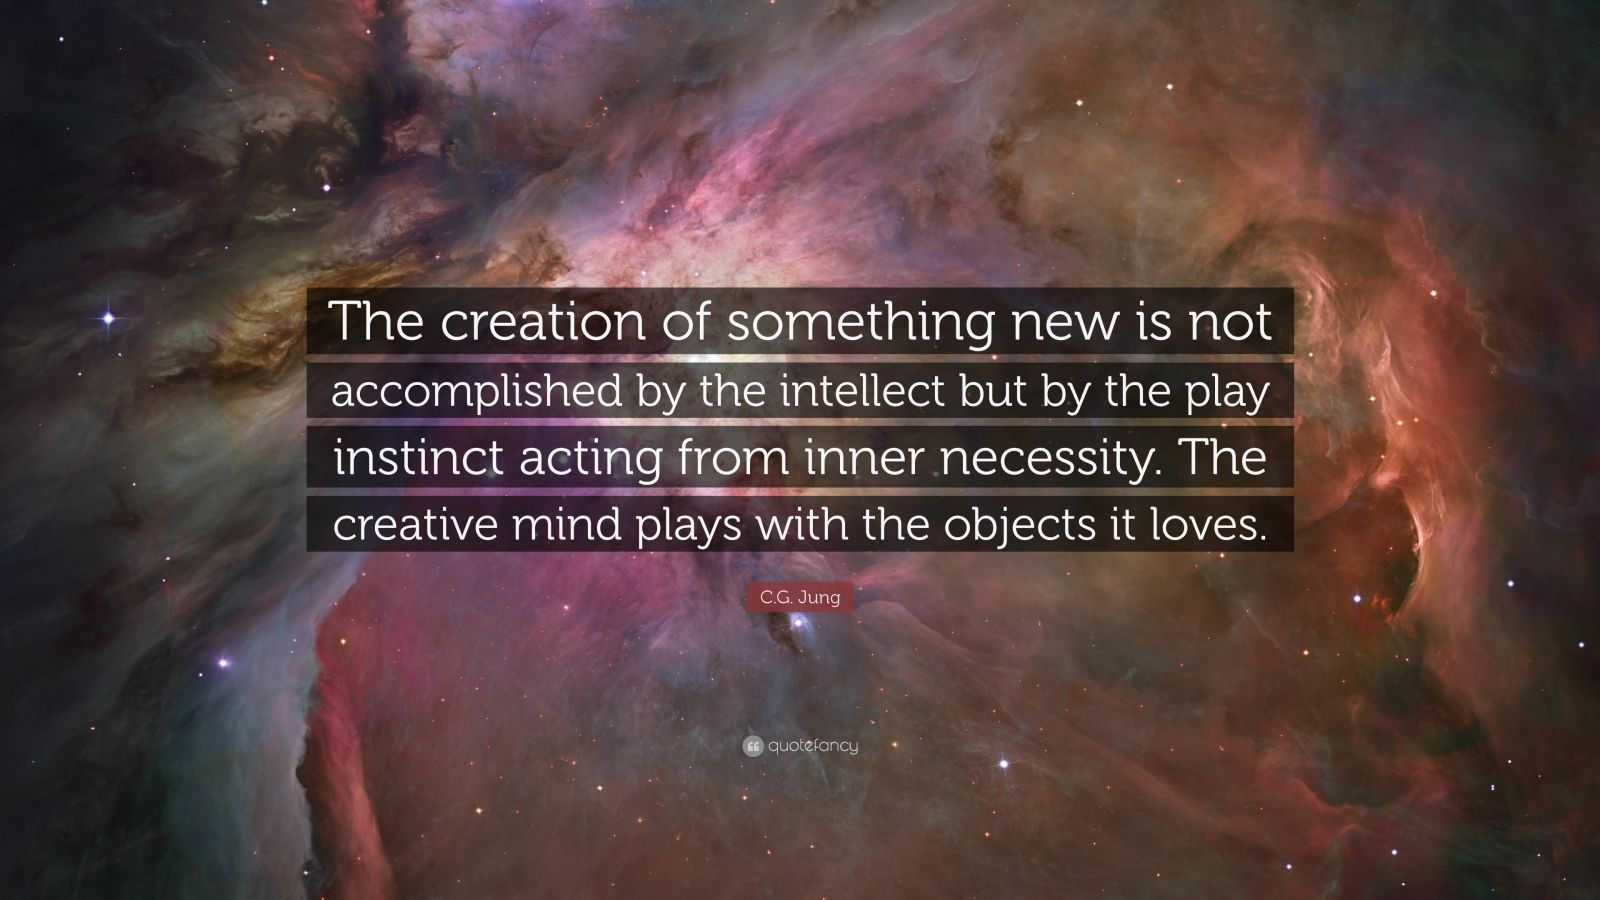 """C.G. Jung Quote: """"The creation of something new is not accomplished by the intellect but by the play instinct acting from inner necessity. The creative mind plays with the objects it loves. """""""